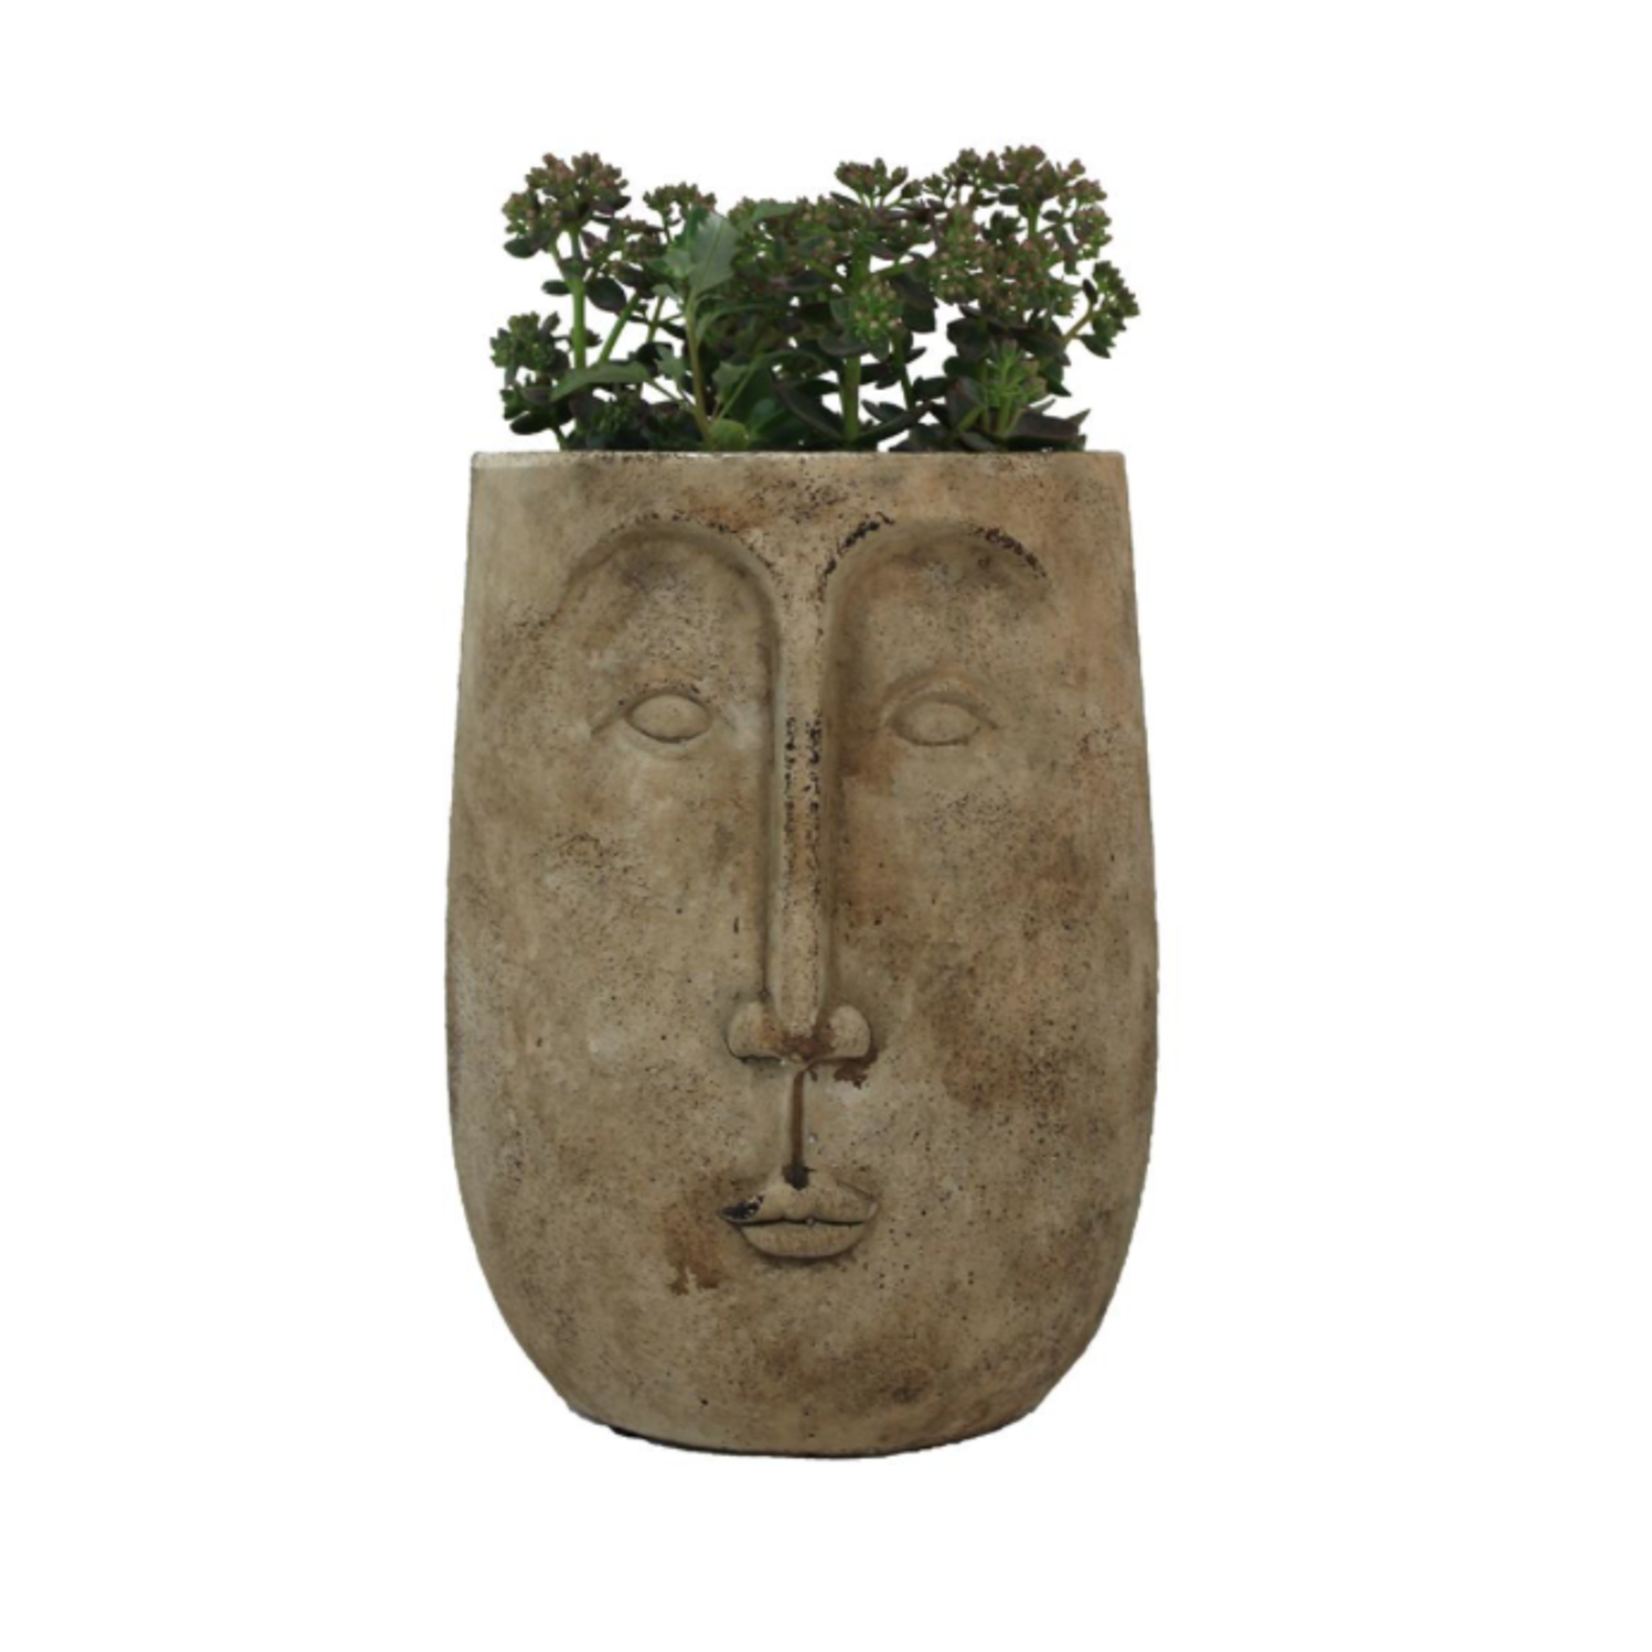 Long Face Planter Pot